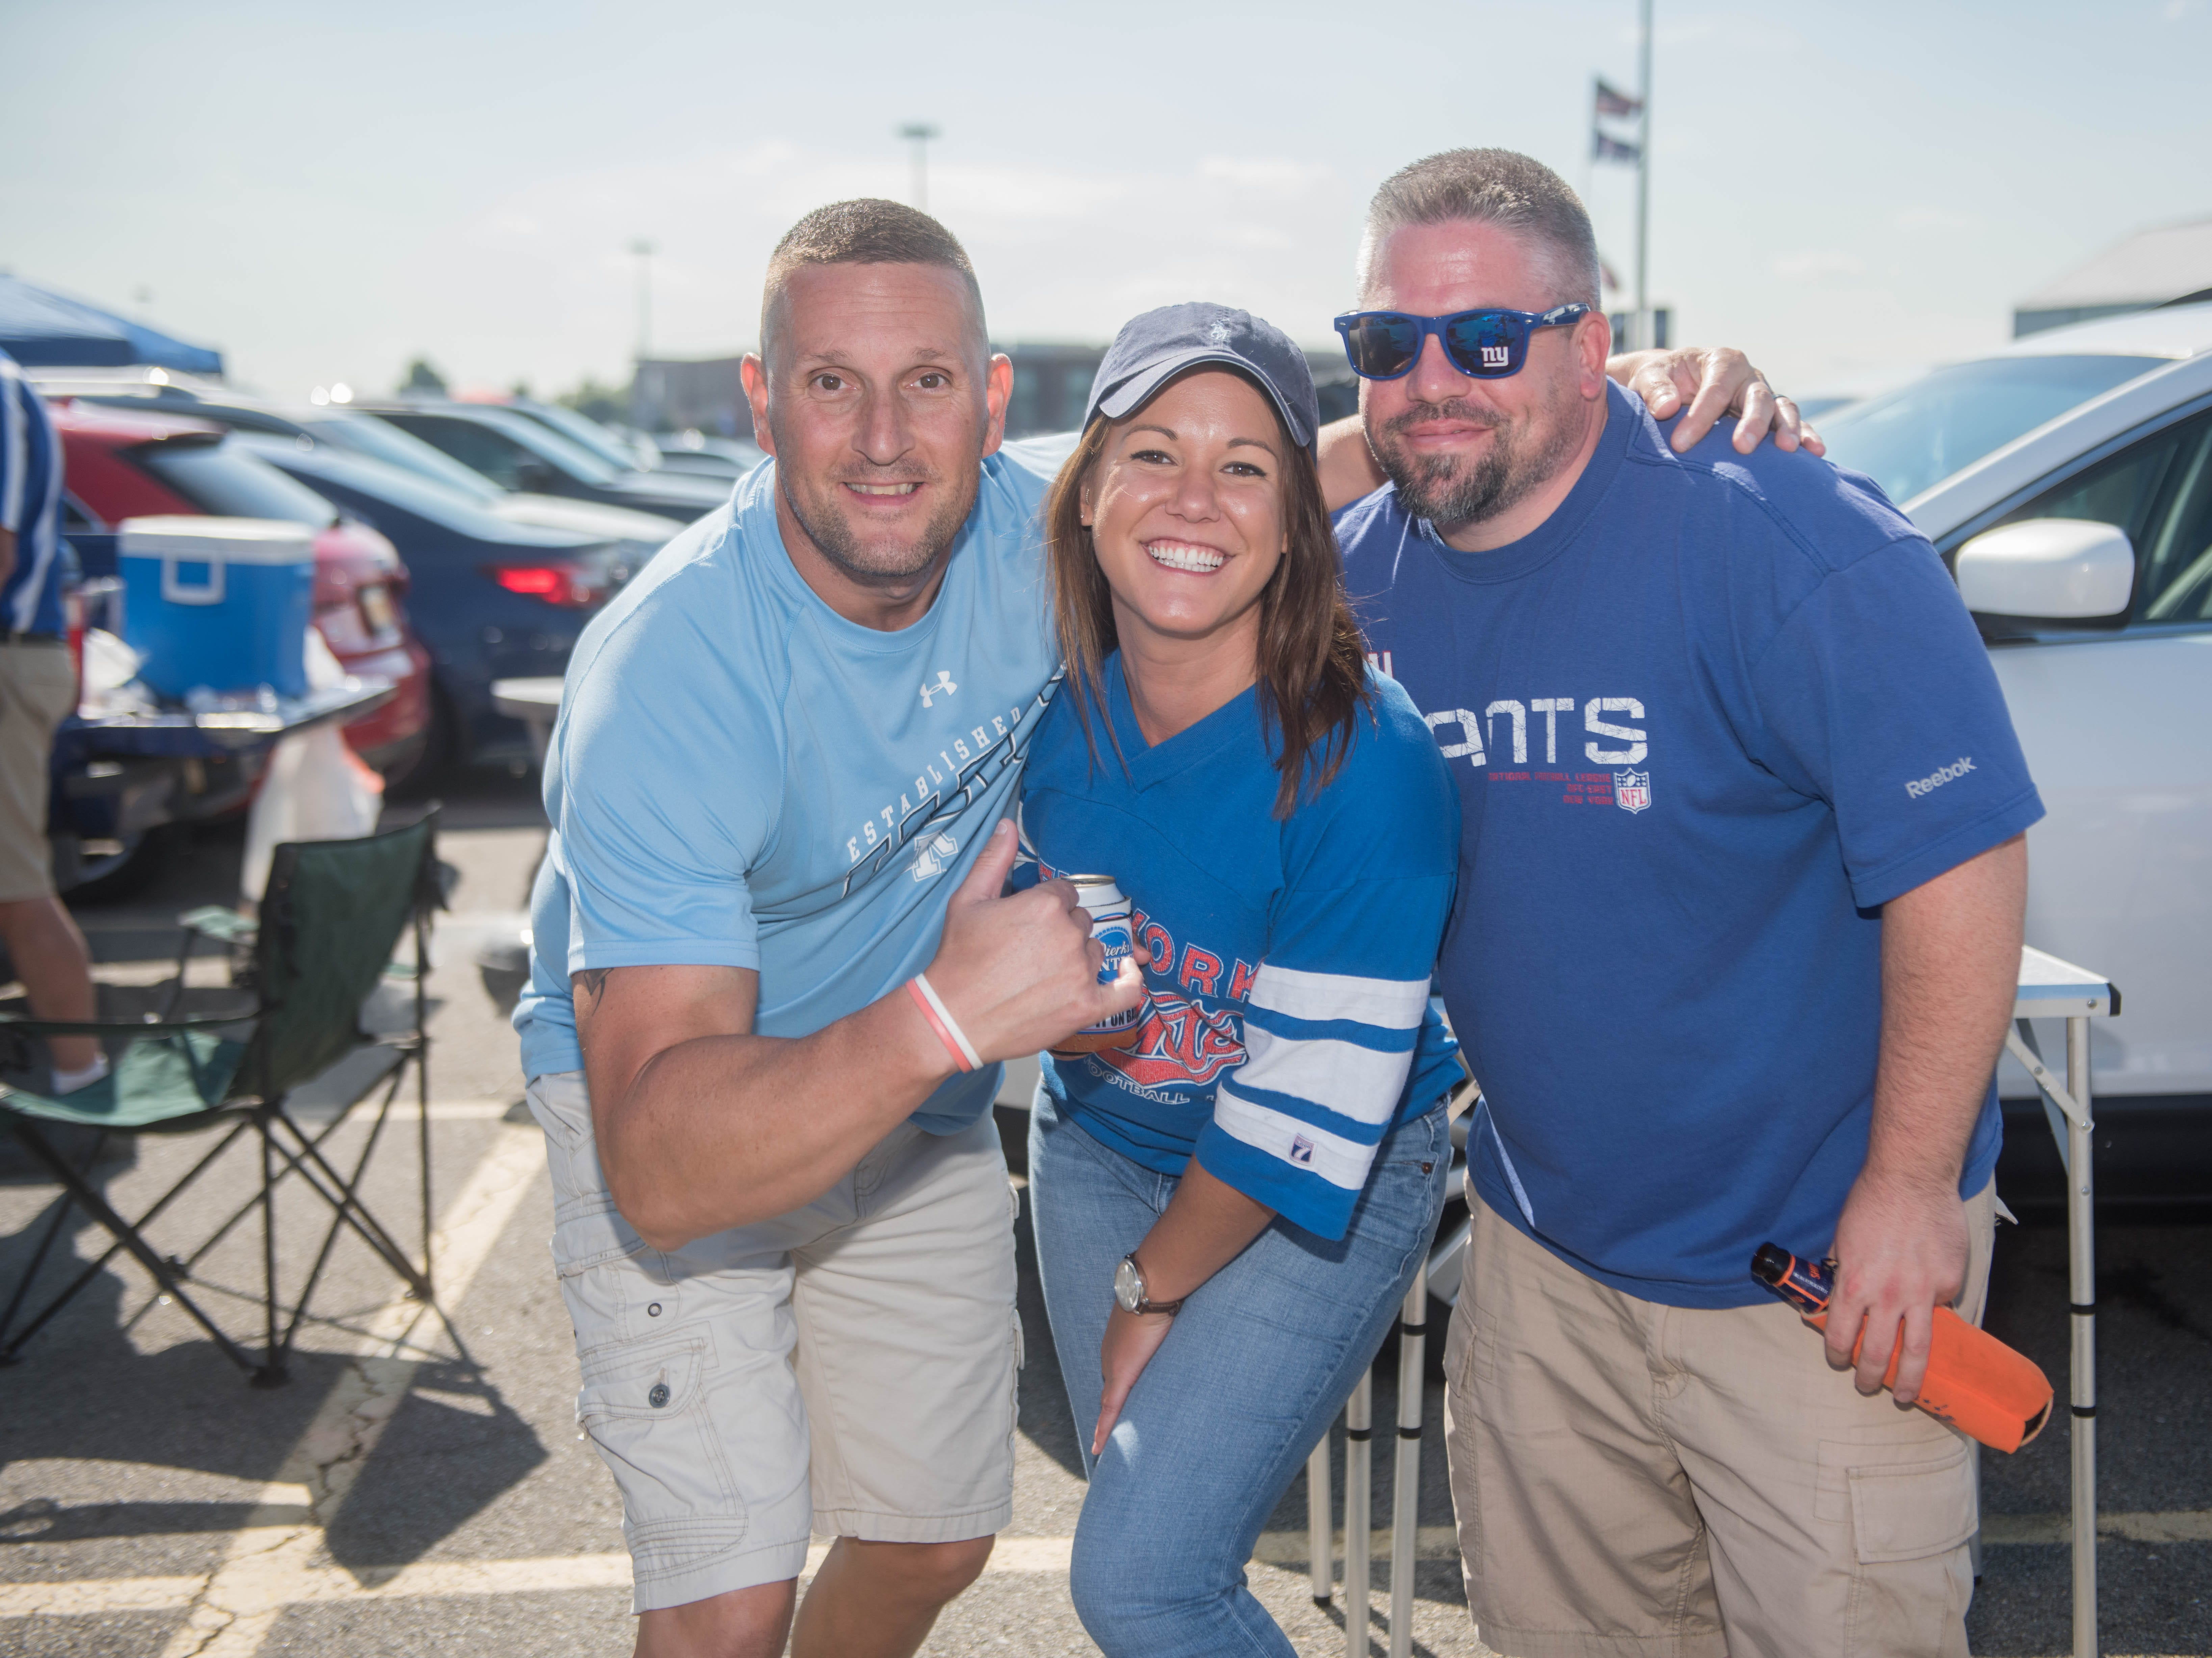 Kevin, Kerstin and Ed at the Giants vs. Saints tailgate party, Sunday, Sept. 30, 2018.